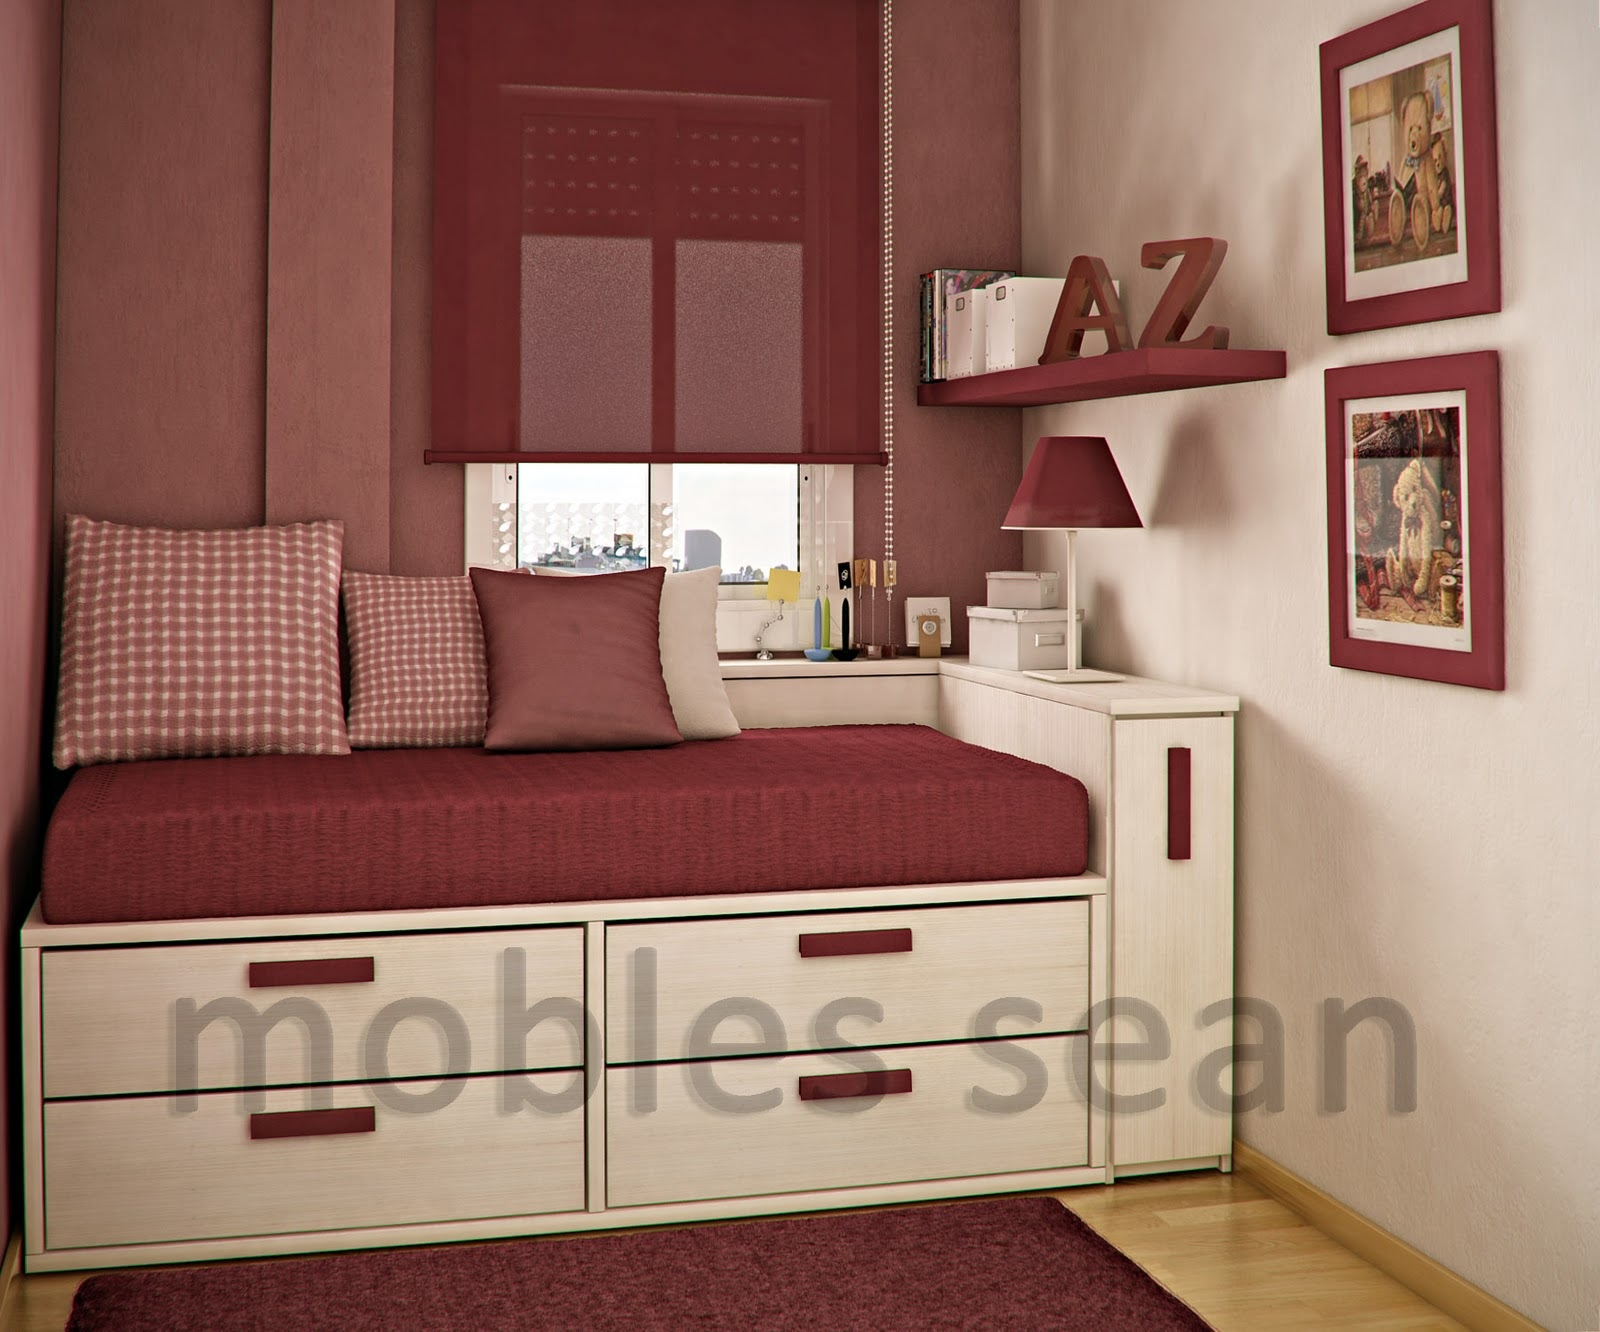 Small Bedroom Decoration. Small Bedroom Decoration I